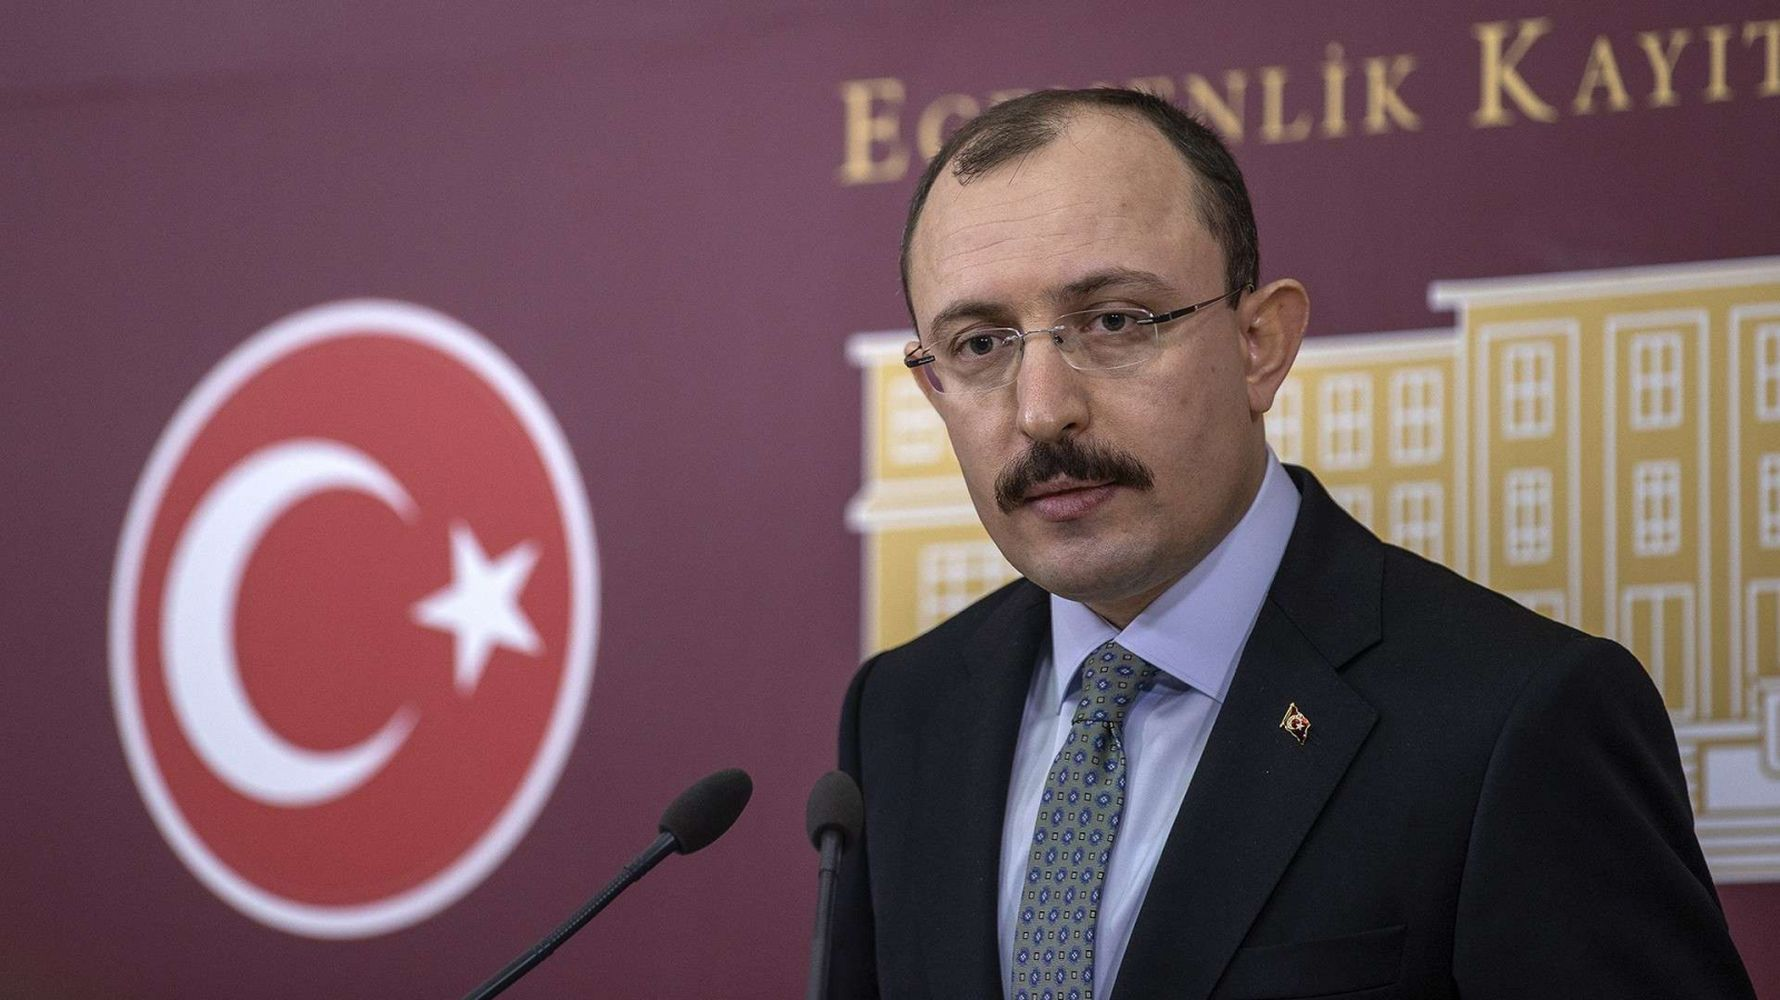 Who is Mehmet Mus appointed as Minister of Commerce